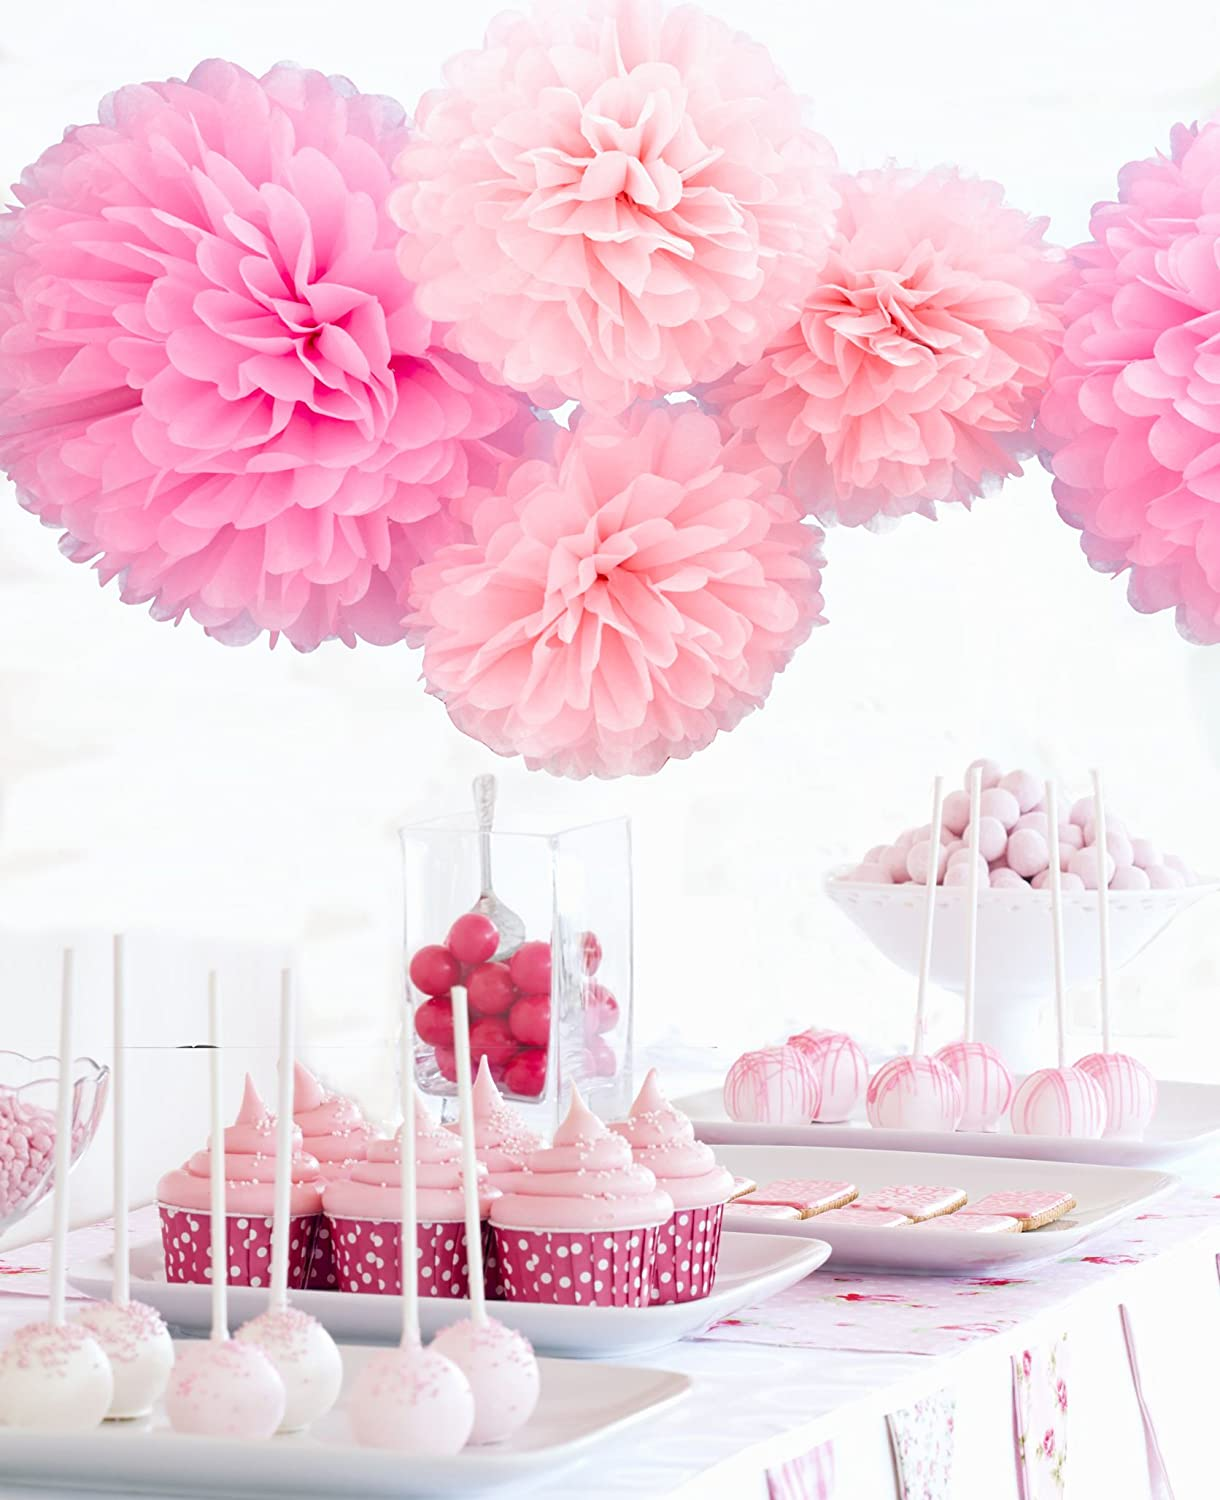 Amazon pom poms by festival hands pack of 5 2 sizes tissue amazon pom poms by festival hands pack of 5 2 sizes tissue paper flowerstissue paper pom pomswedding decorbaby shower party suppliestissue paper mightylinksfo Image collections